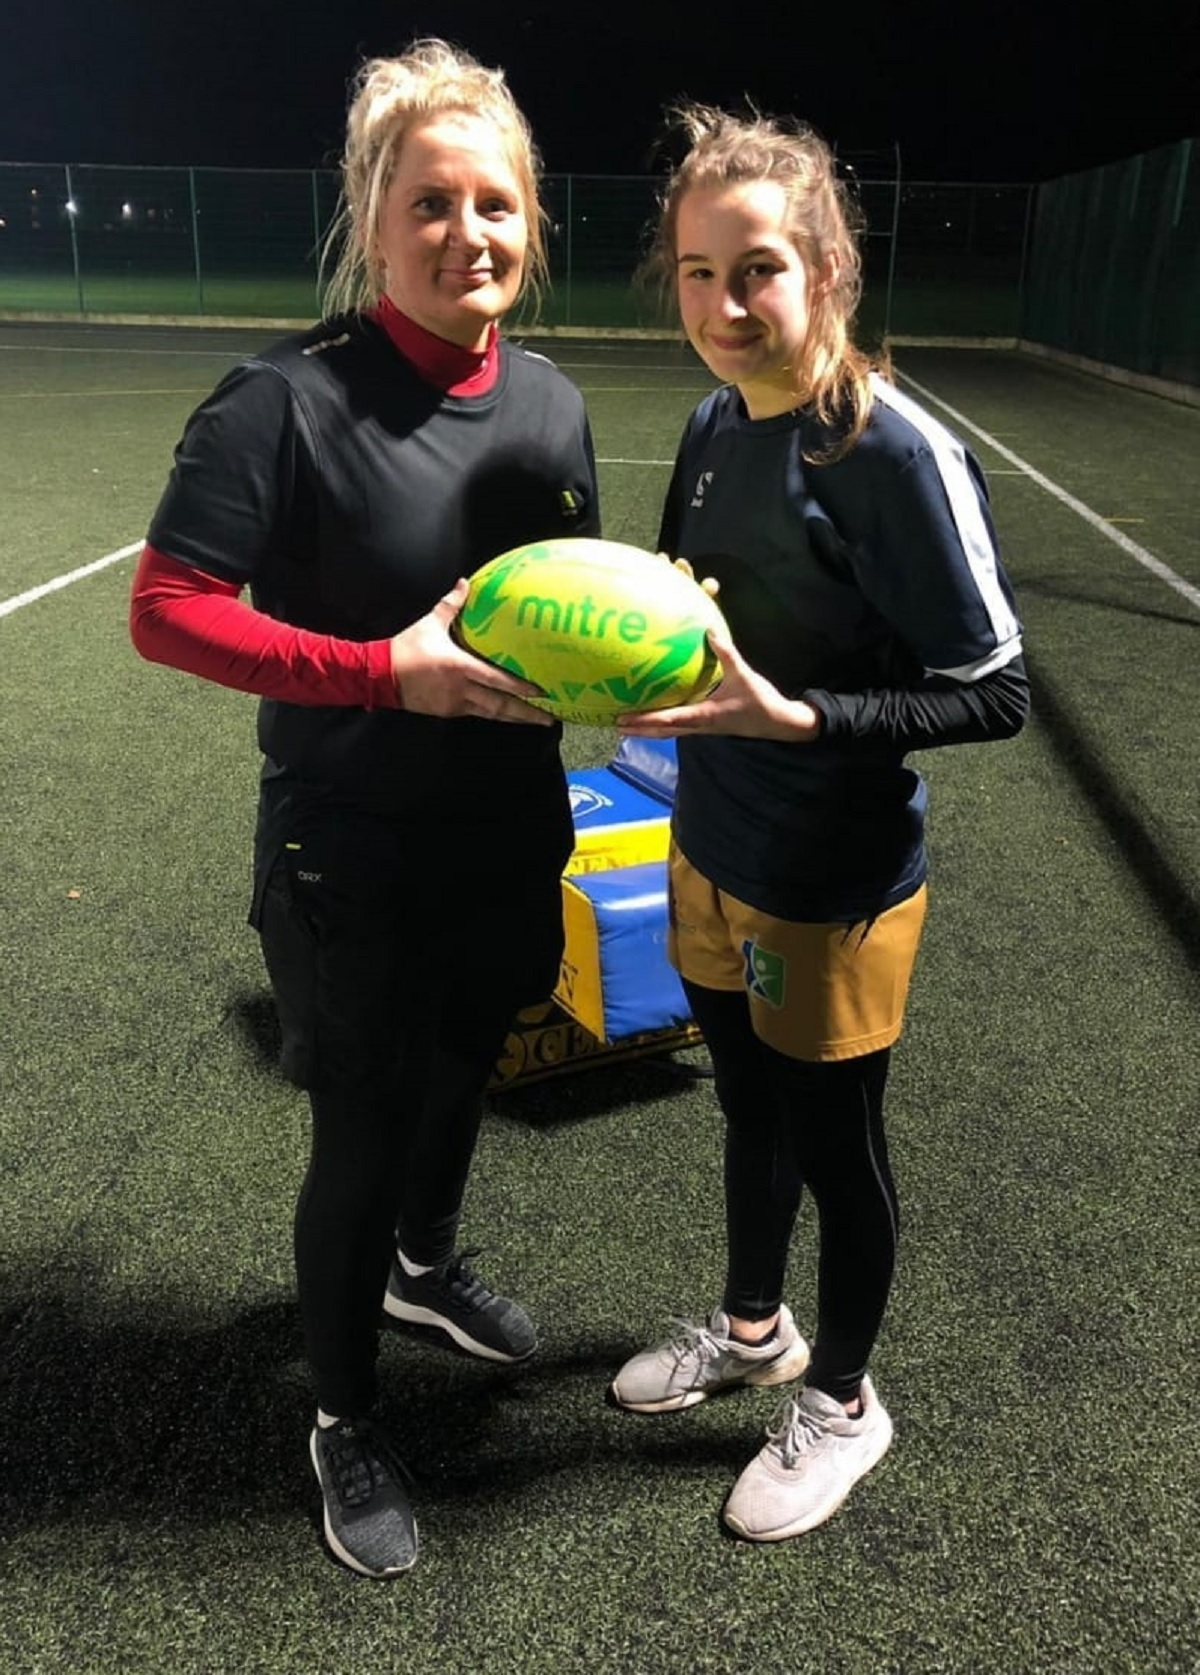 From left, Keighley Albion Ladies players Emma Templeton and Hollie Haigh have been picked to represent Yorkshire in the Origin game against Lancashire on Sunday